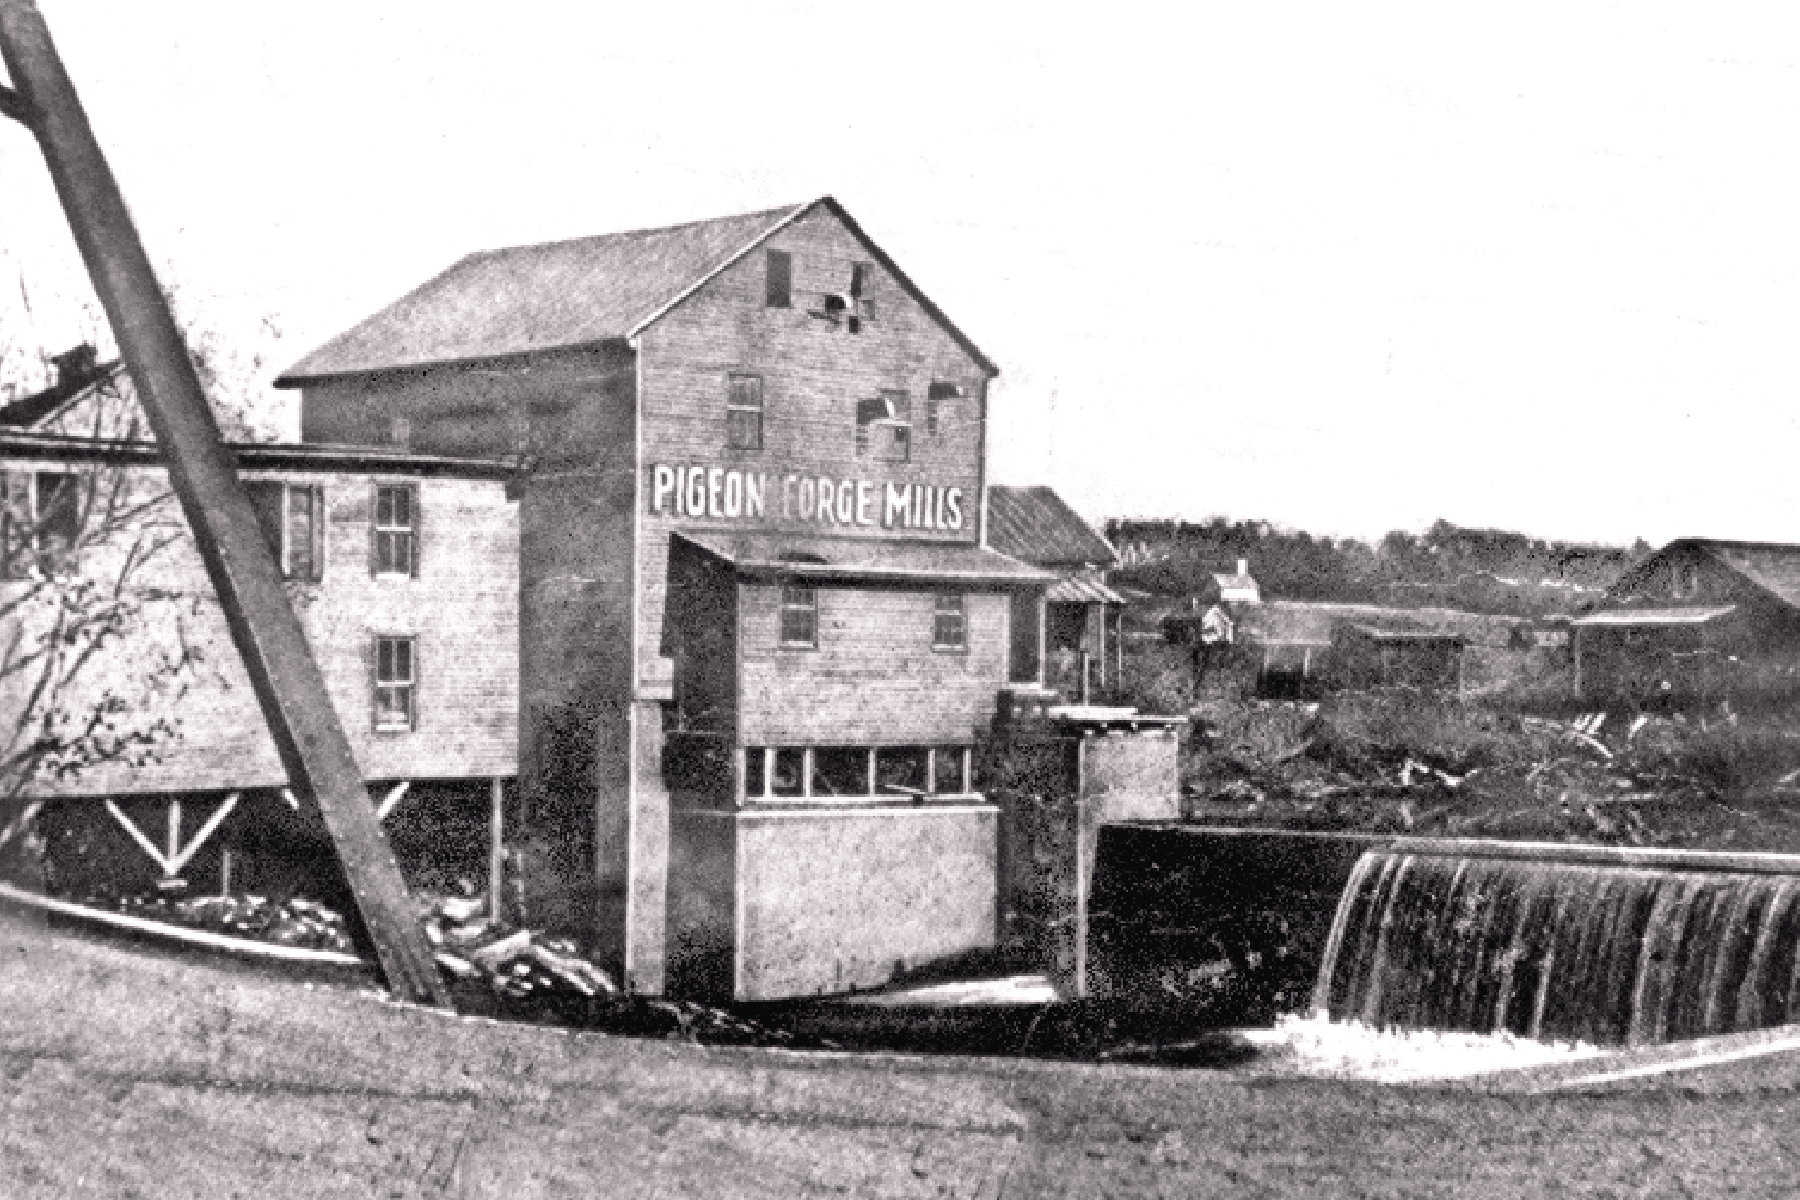 Old Mill historic shot in Pigeon Forge, Tennessee.